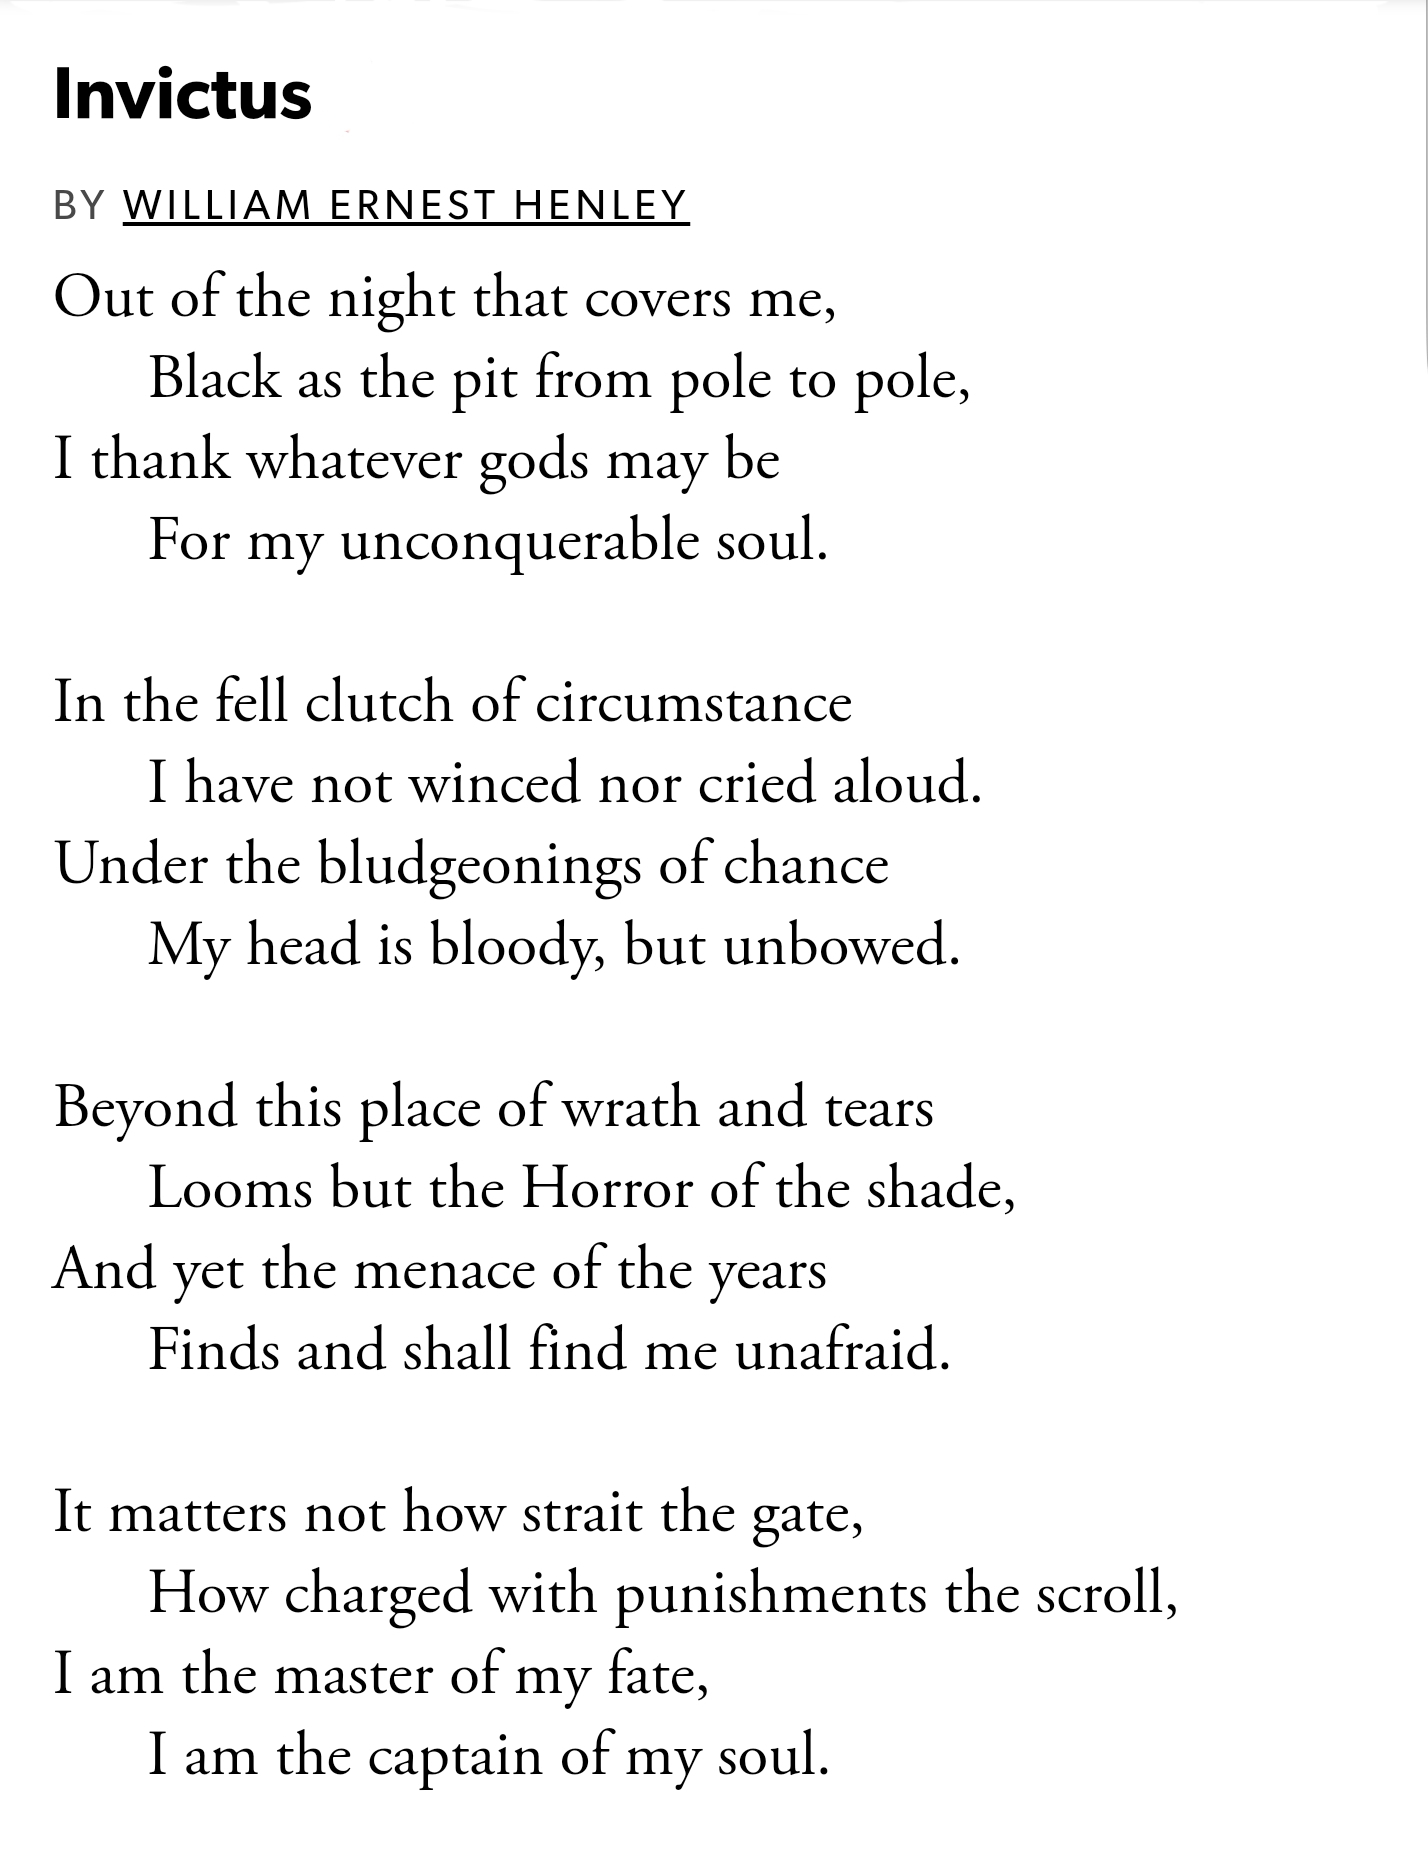 [Image] Invictus by William Henley – My favorite poem, and source of motivation. I felt it needed to be shared!